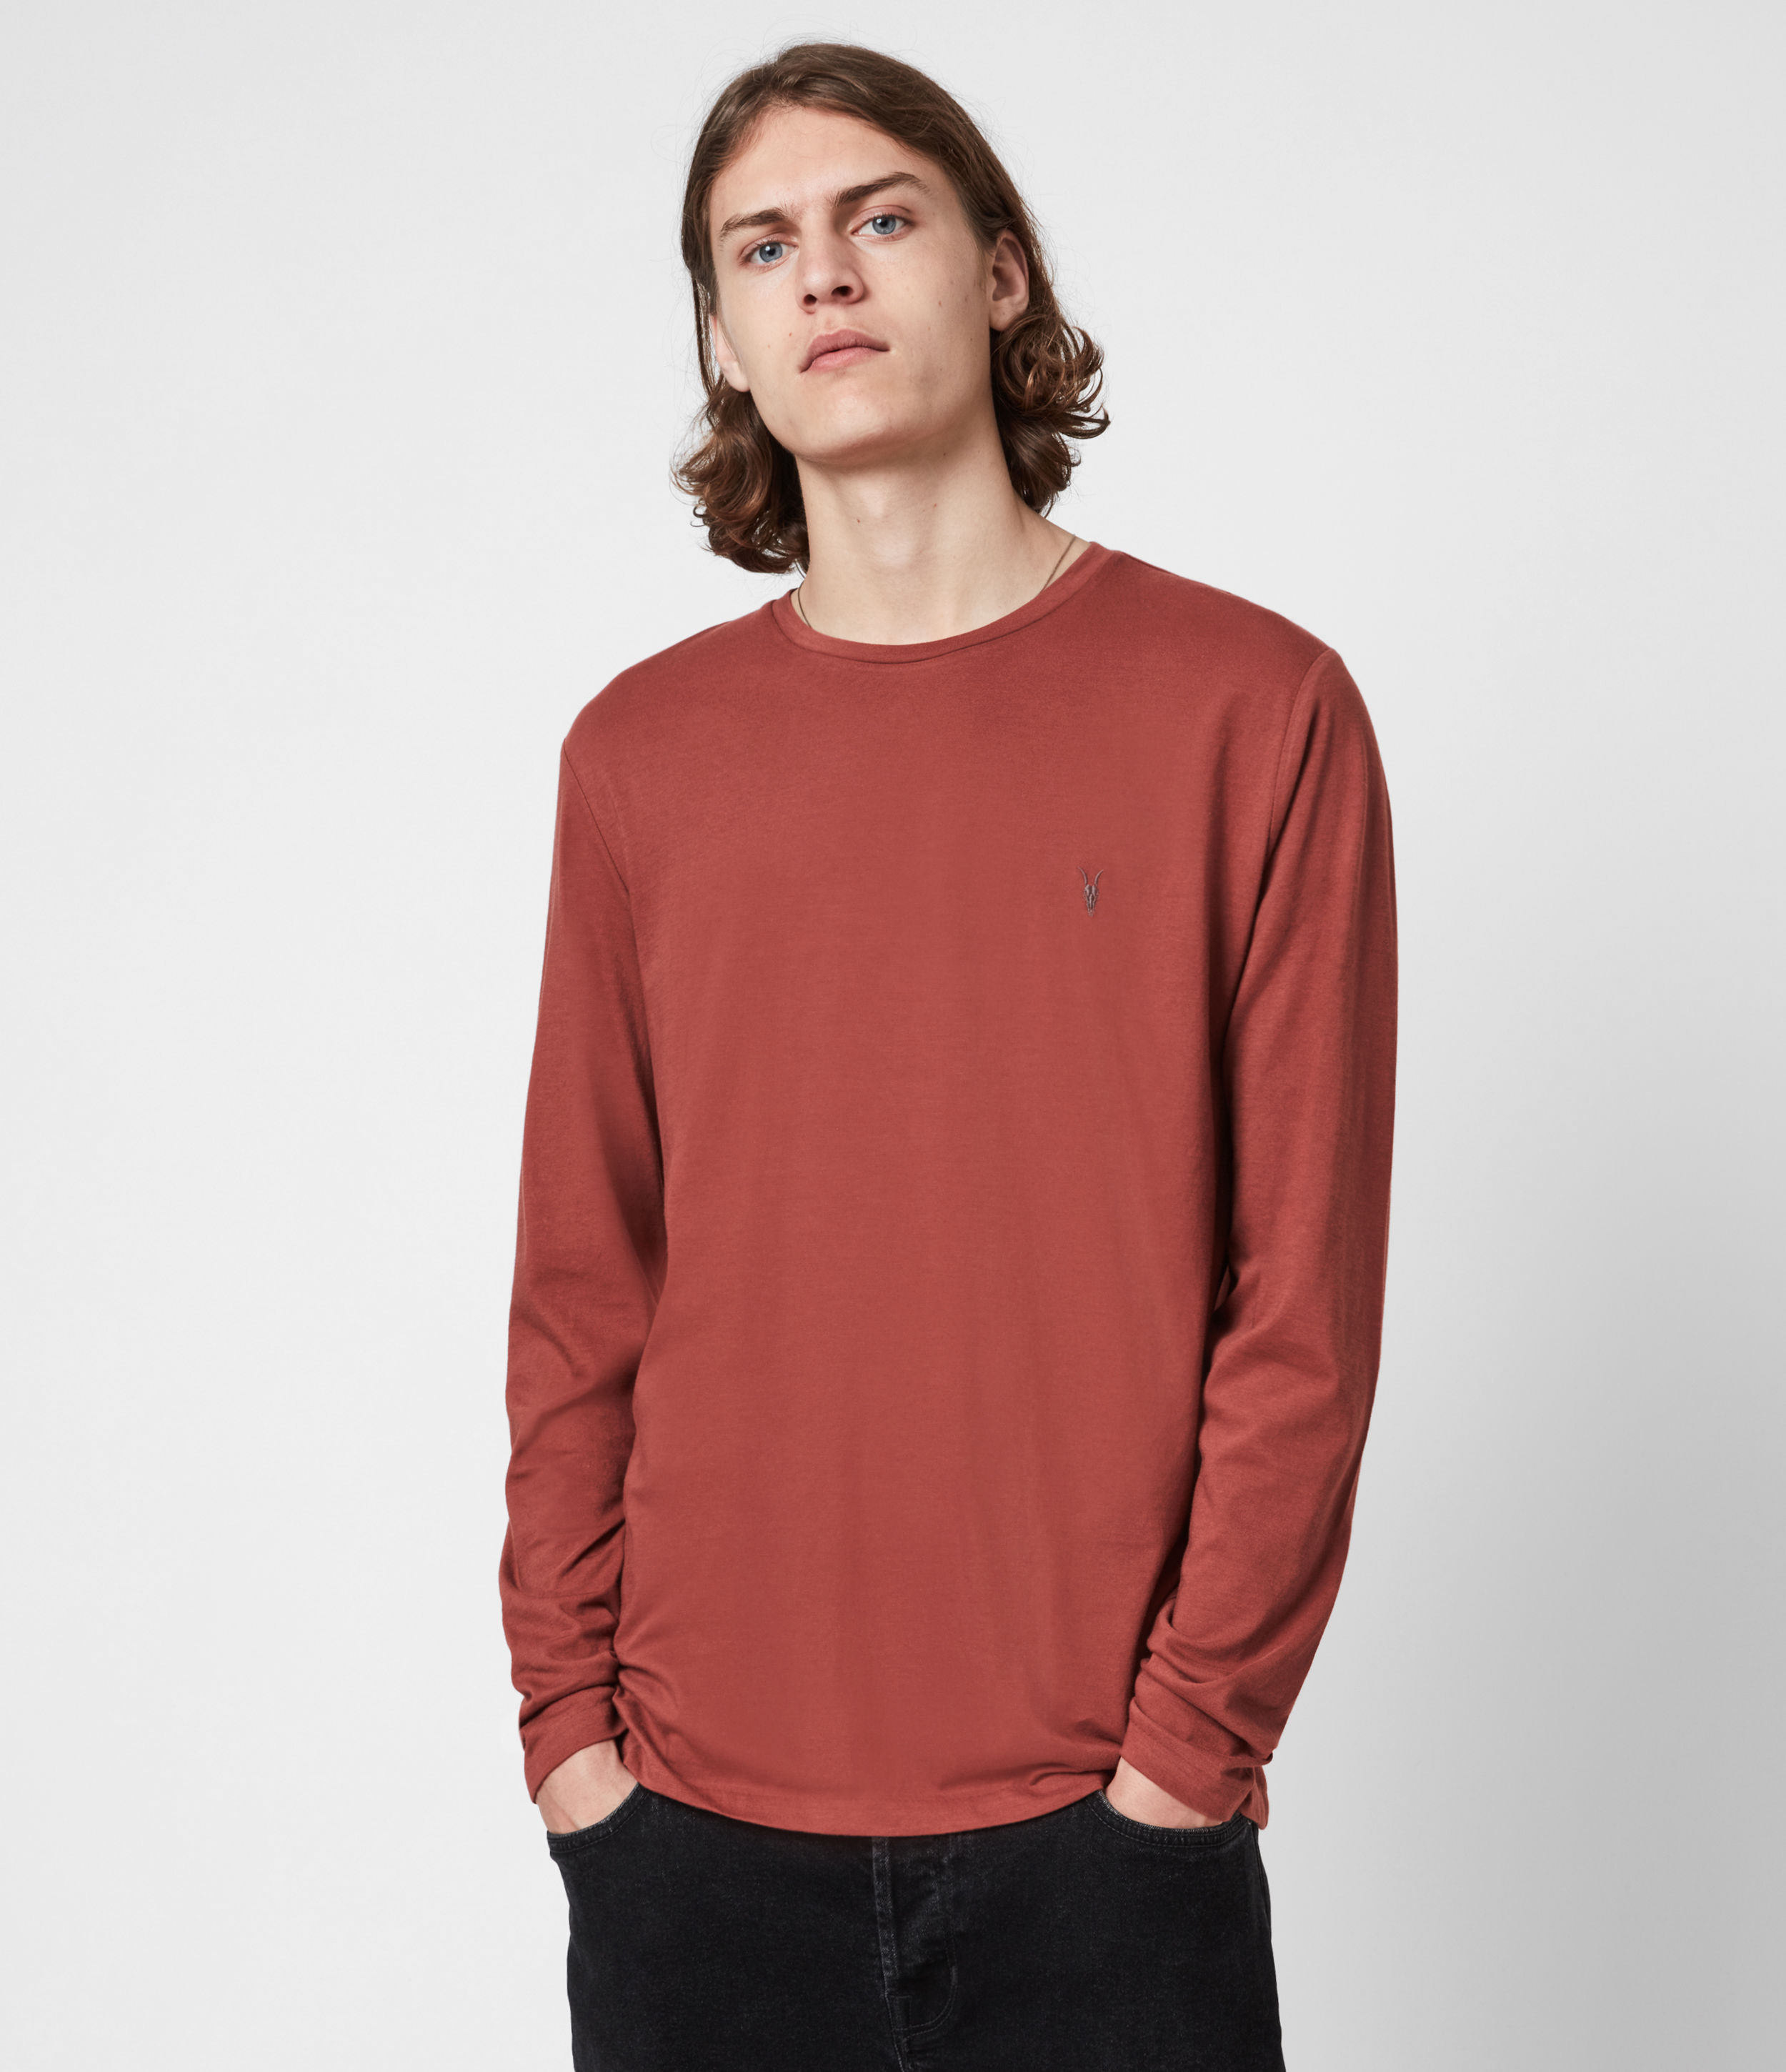 AllSaints Men's Tonic Long Sleeve Crew T-Shirt, Clay RED, Size: XS